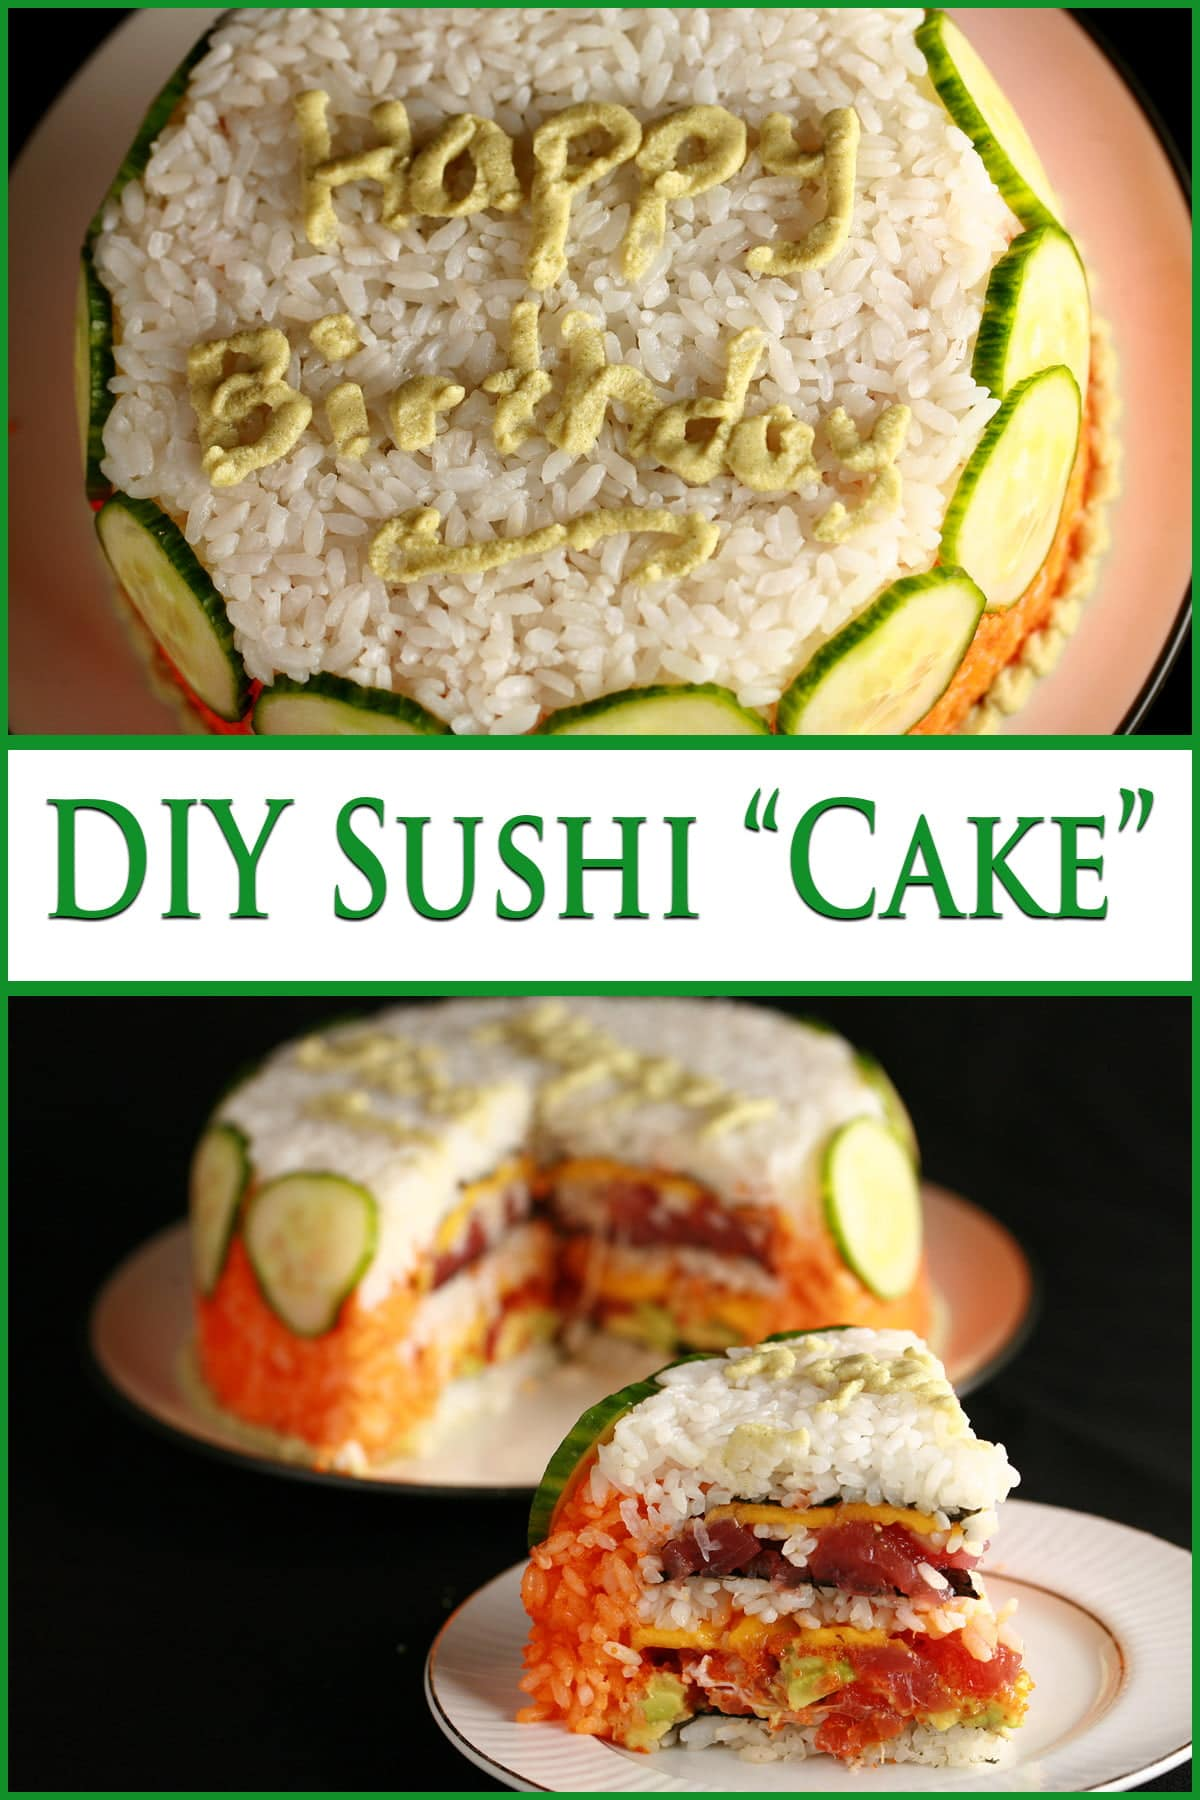 """A small """"birthday cake"""" made of white and orange rice and cucumber slices. """"Happy Birthday"""" is written on the top, in wasabi. The bottom of the image shows the inside of the sushi cake, with layers of fish and vegetables."""